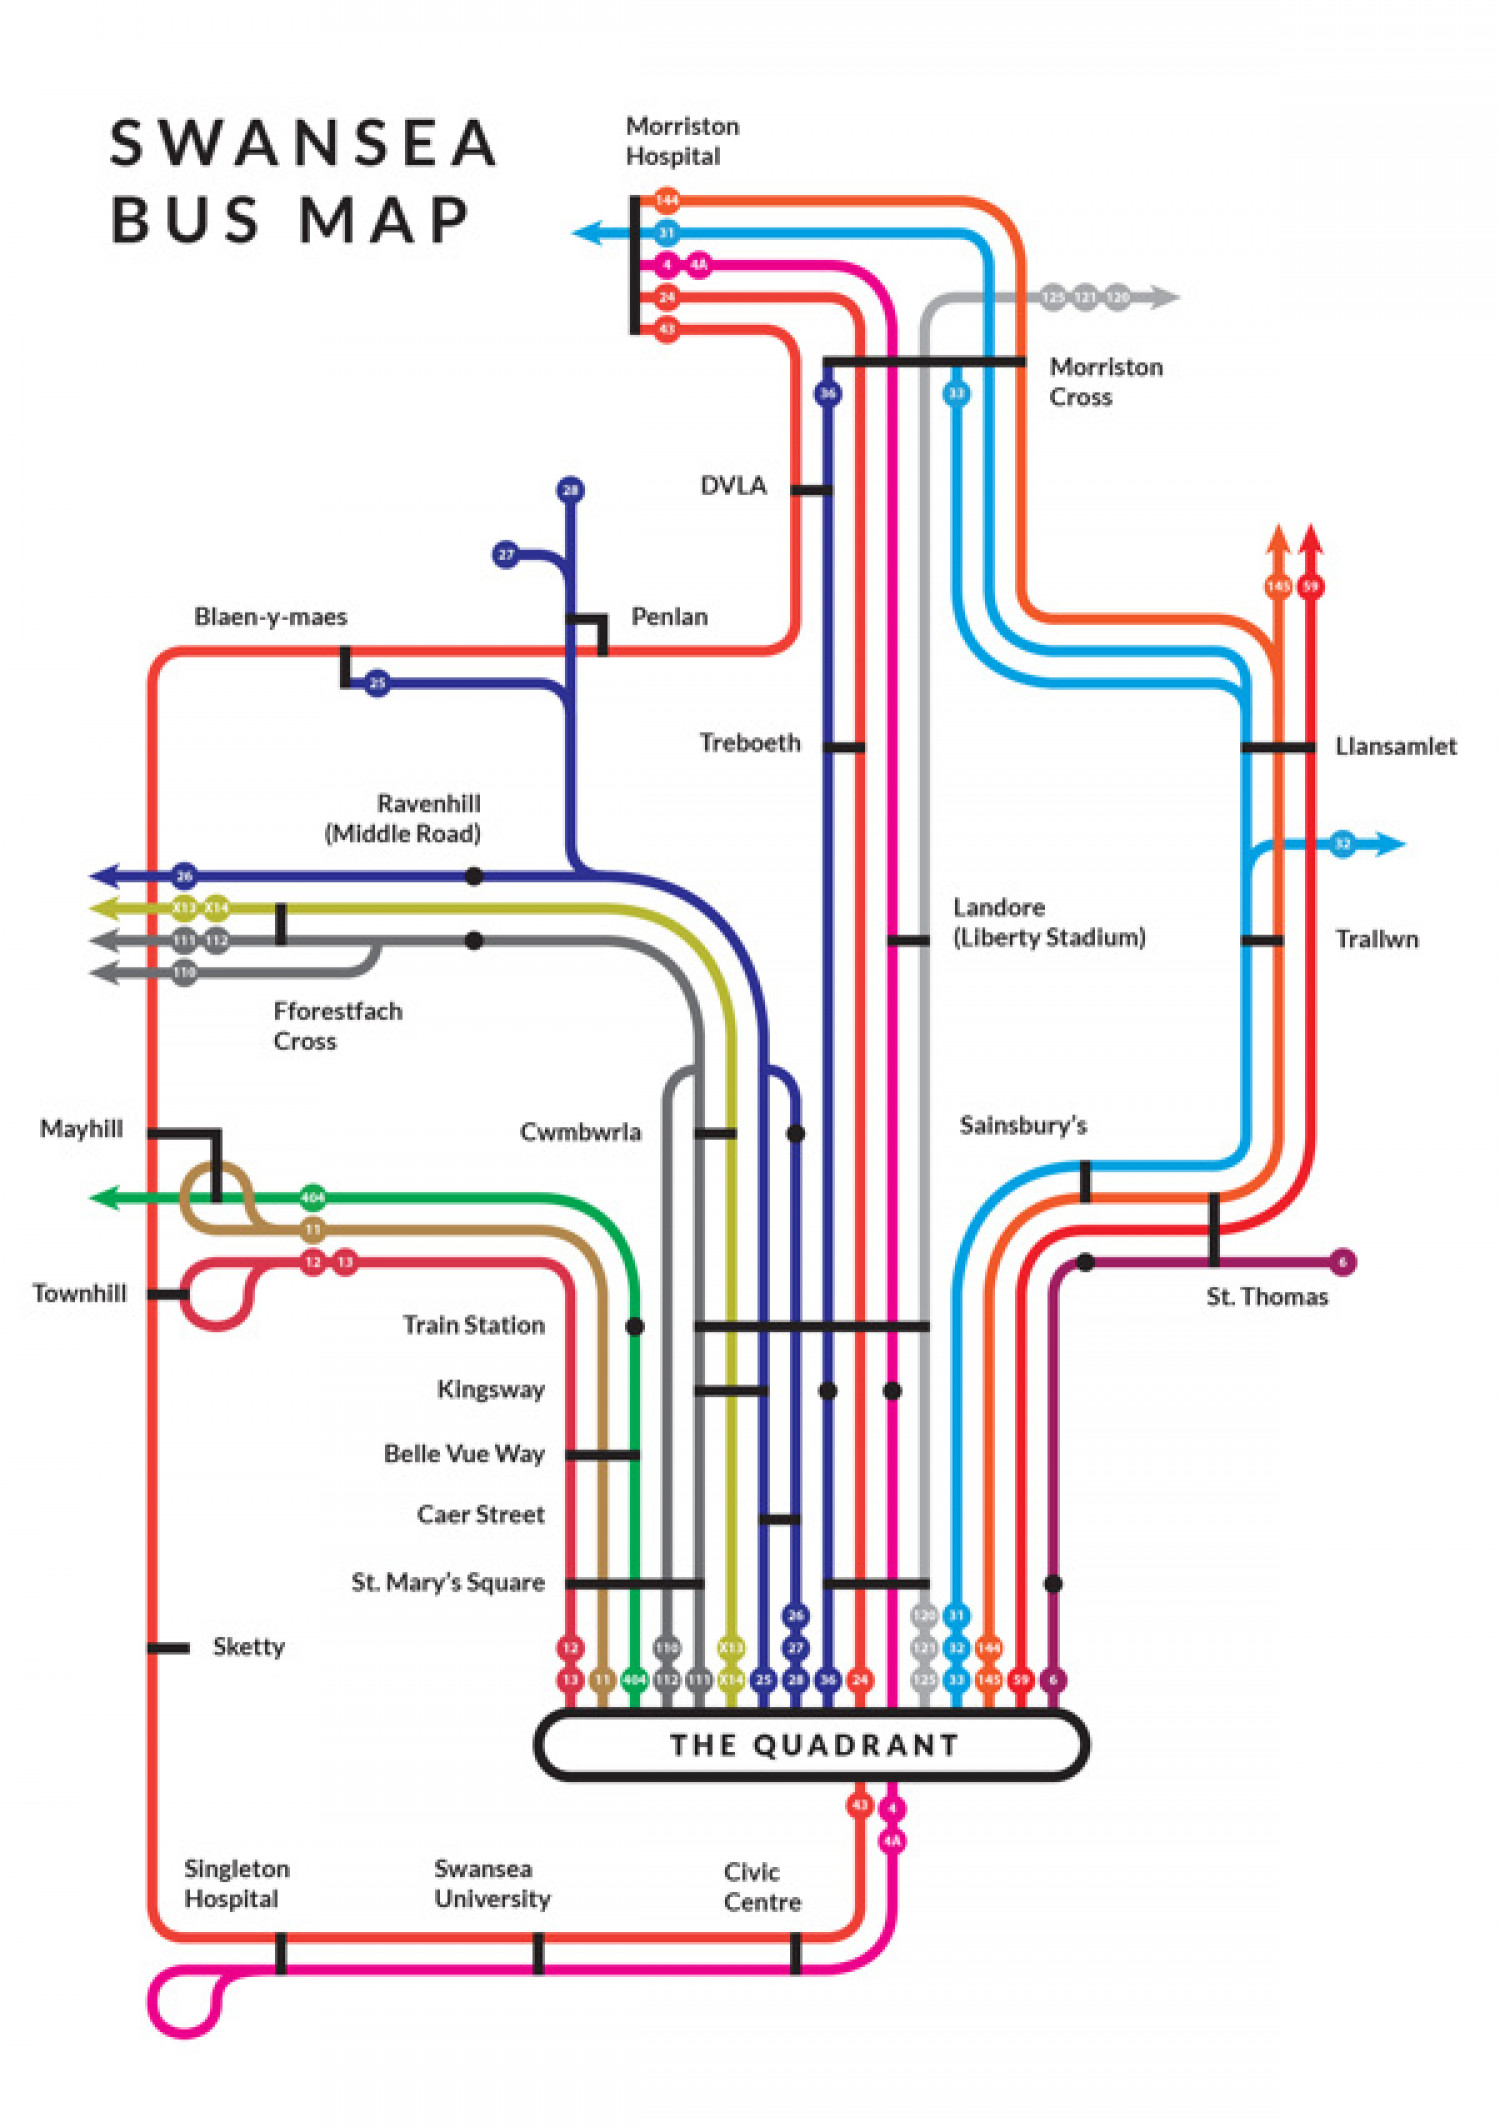 Swansea Bus Map Infographic